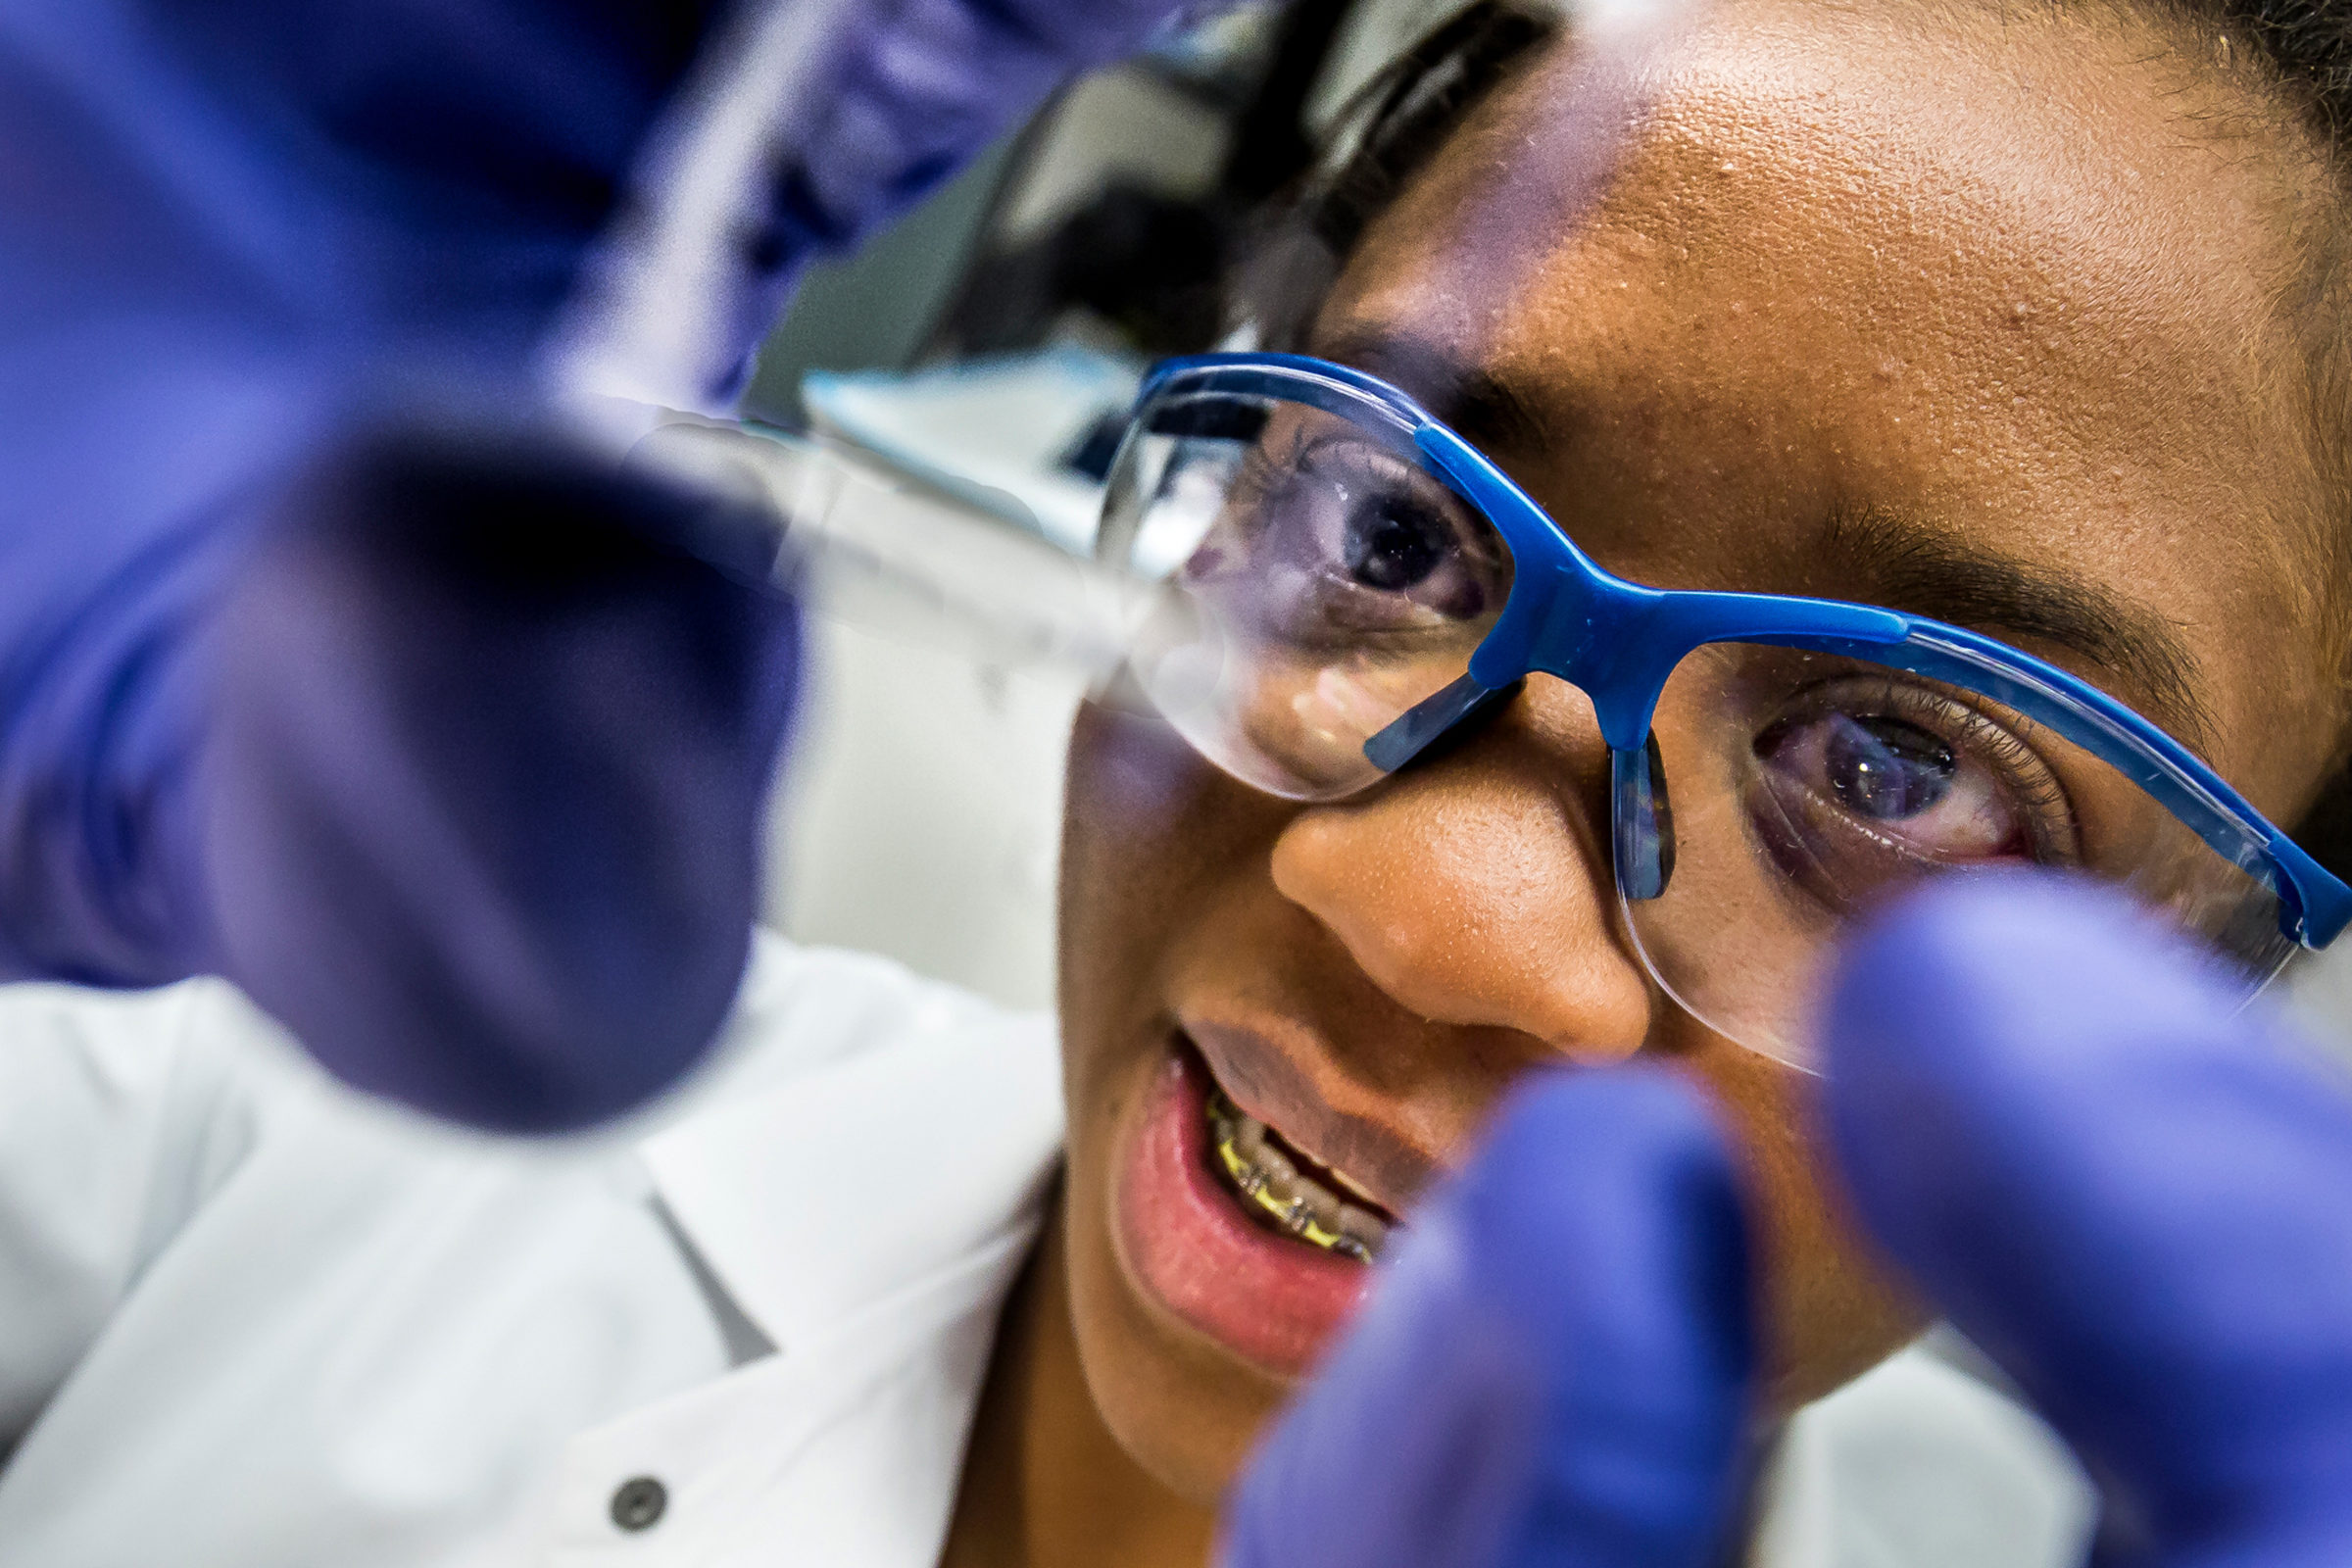 Rhonda Jack looks through a slide in the lab. Photo: Joseph Xu, Michigan Engineering Communications & Marketing.